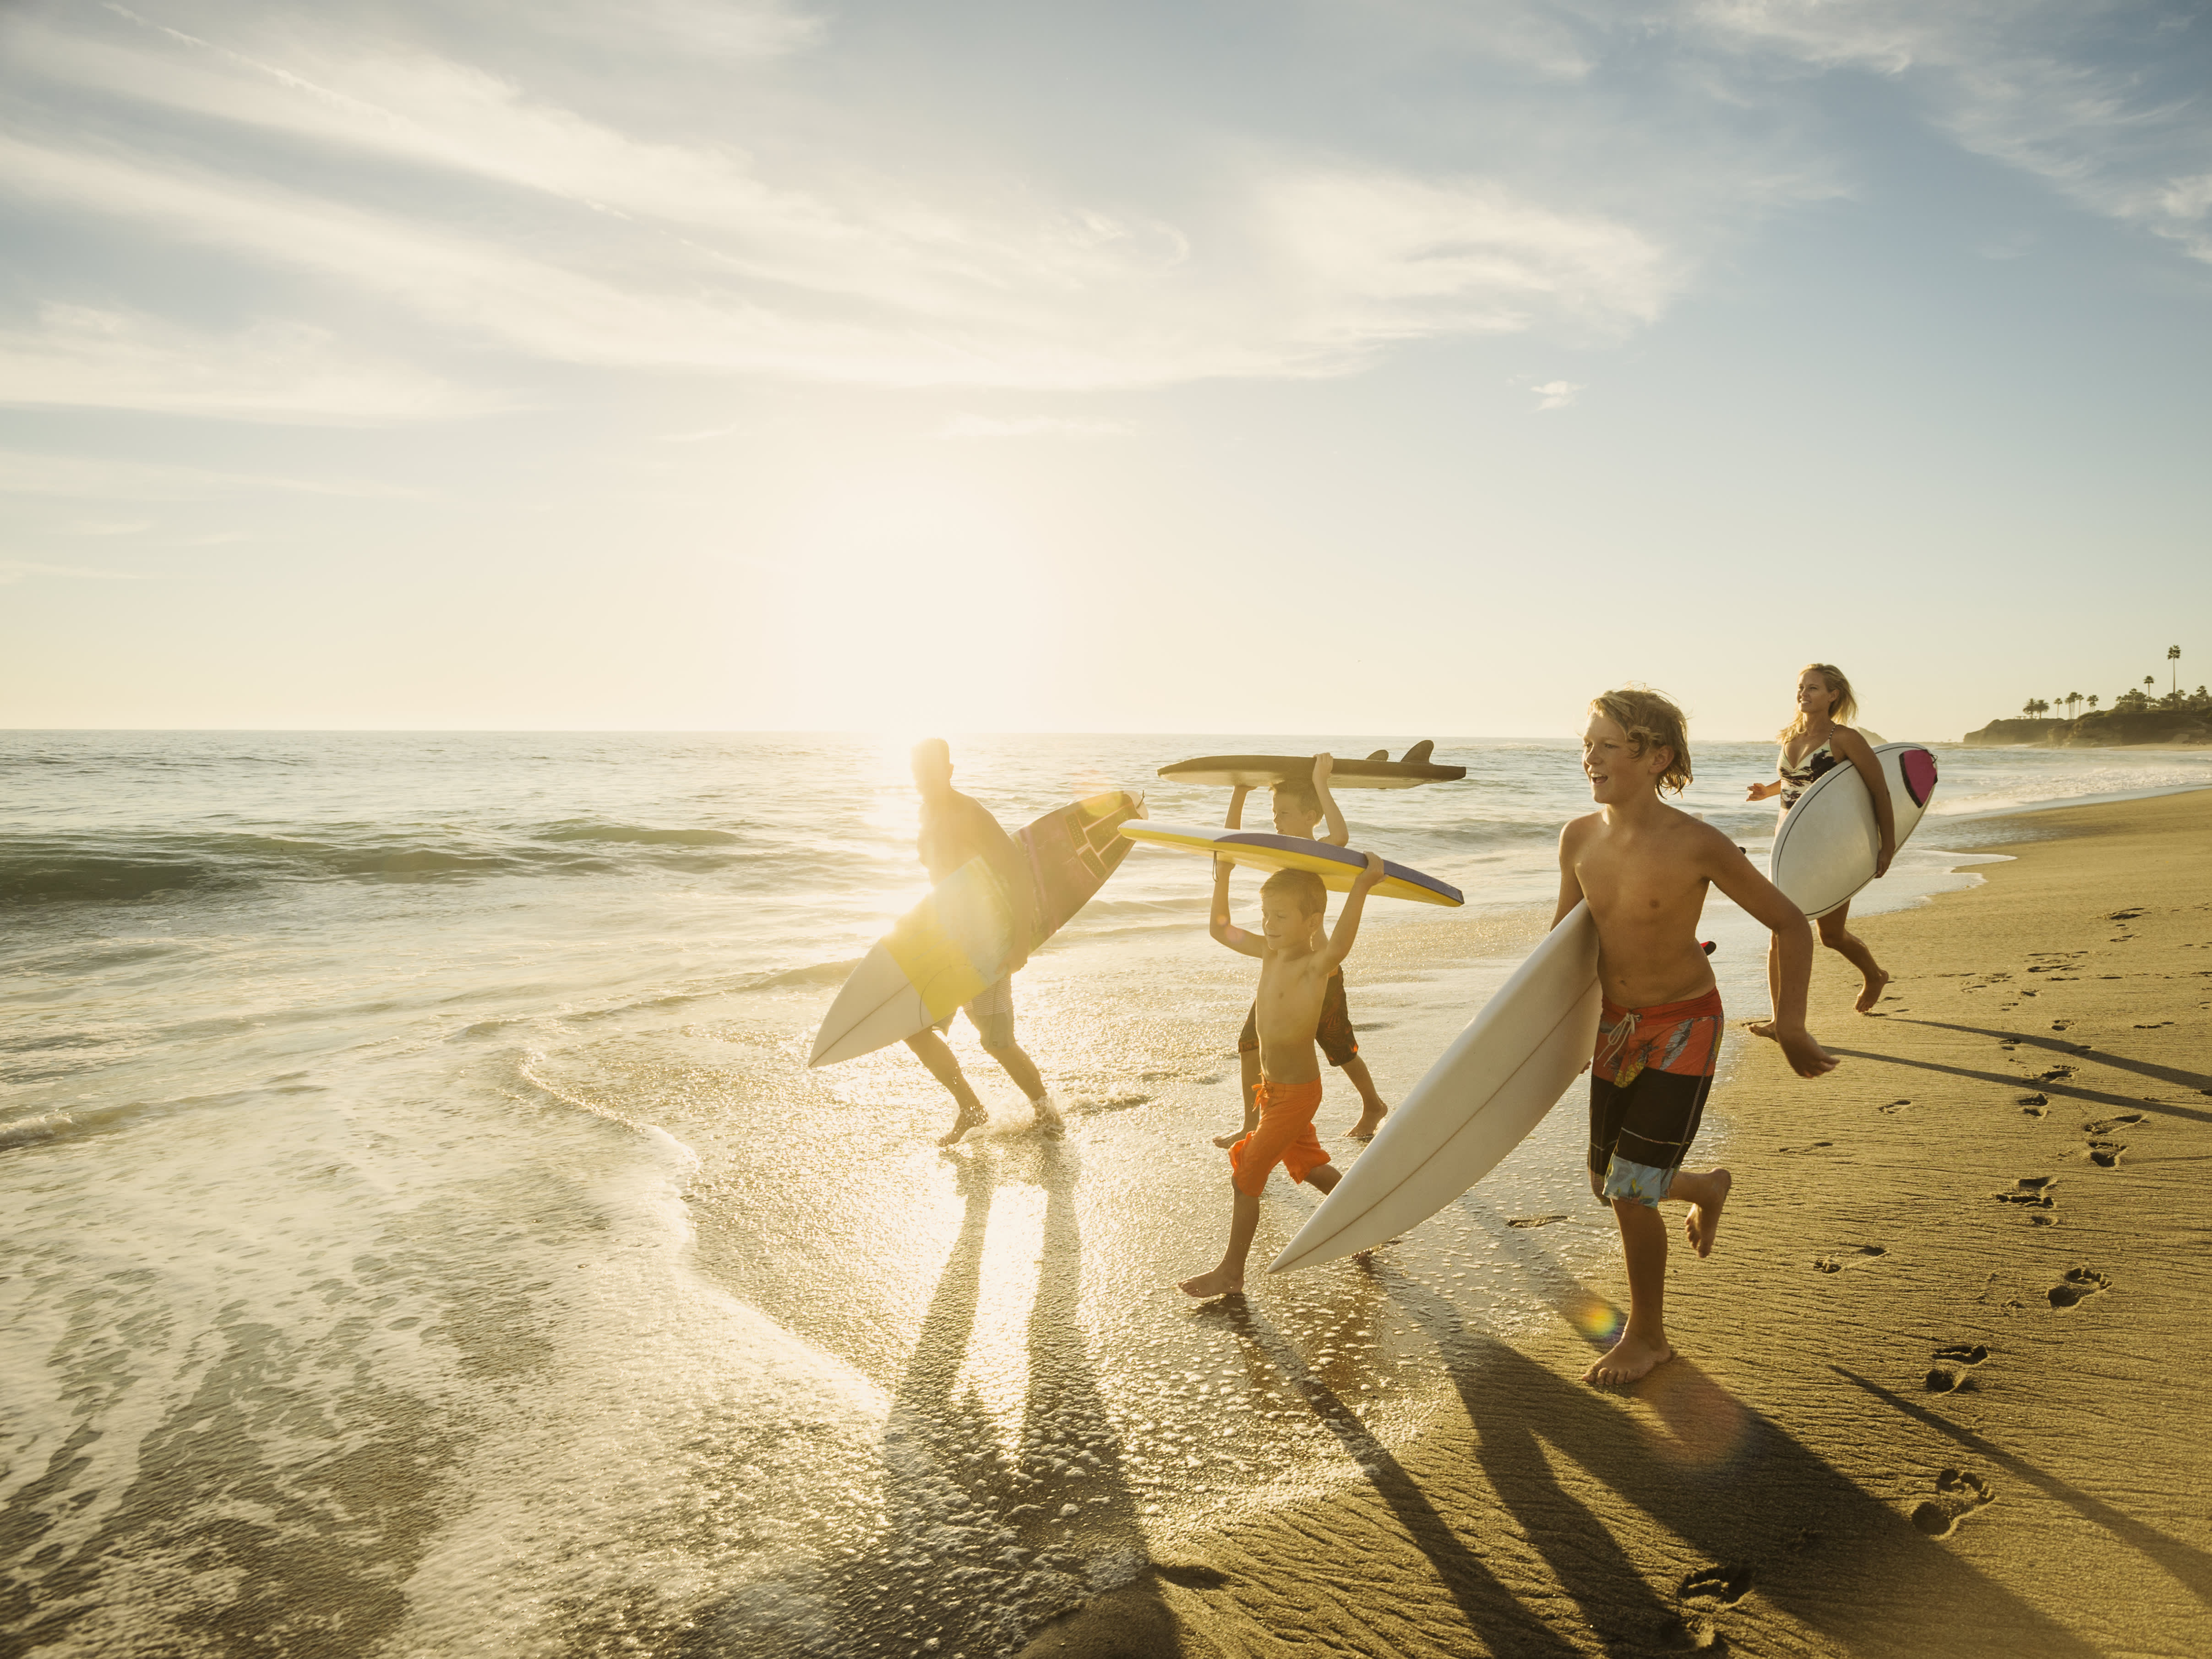 As travel demand surges and prices rise, here are 7 ways to save money this summer